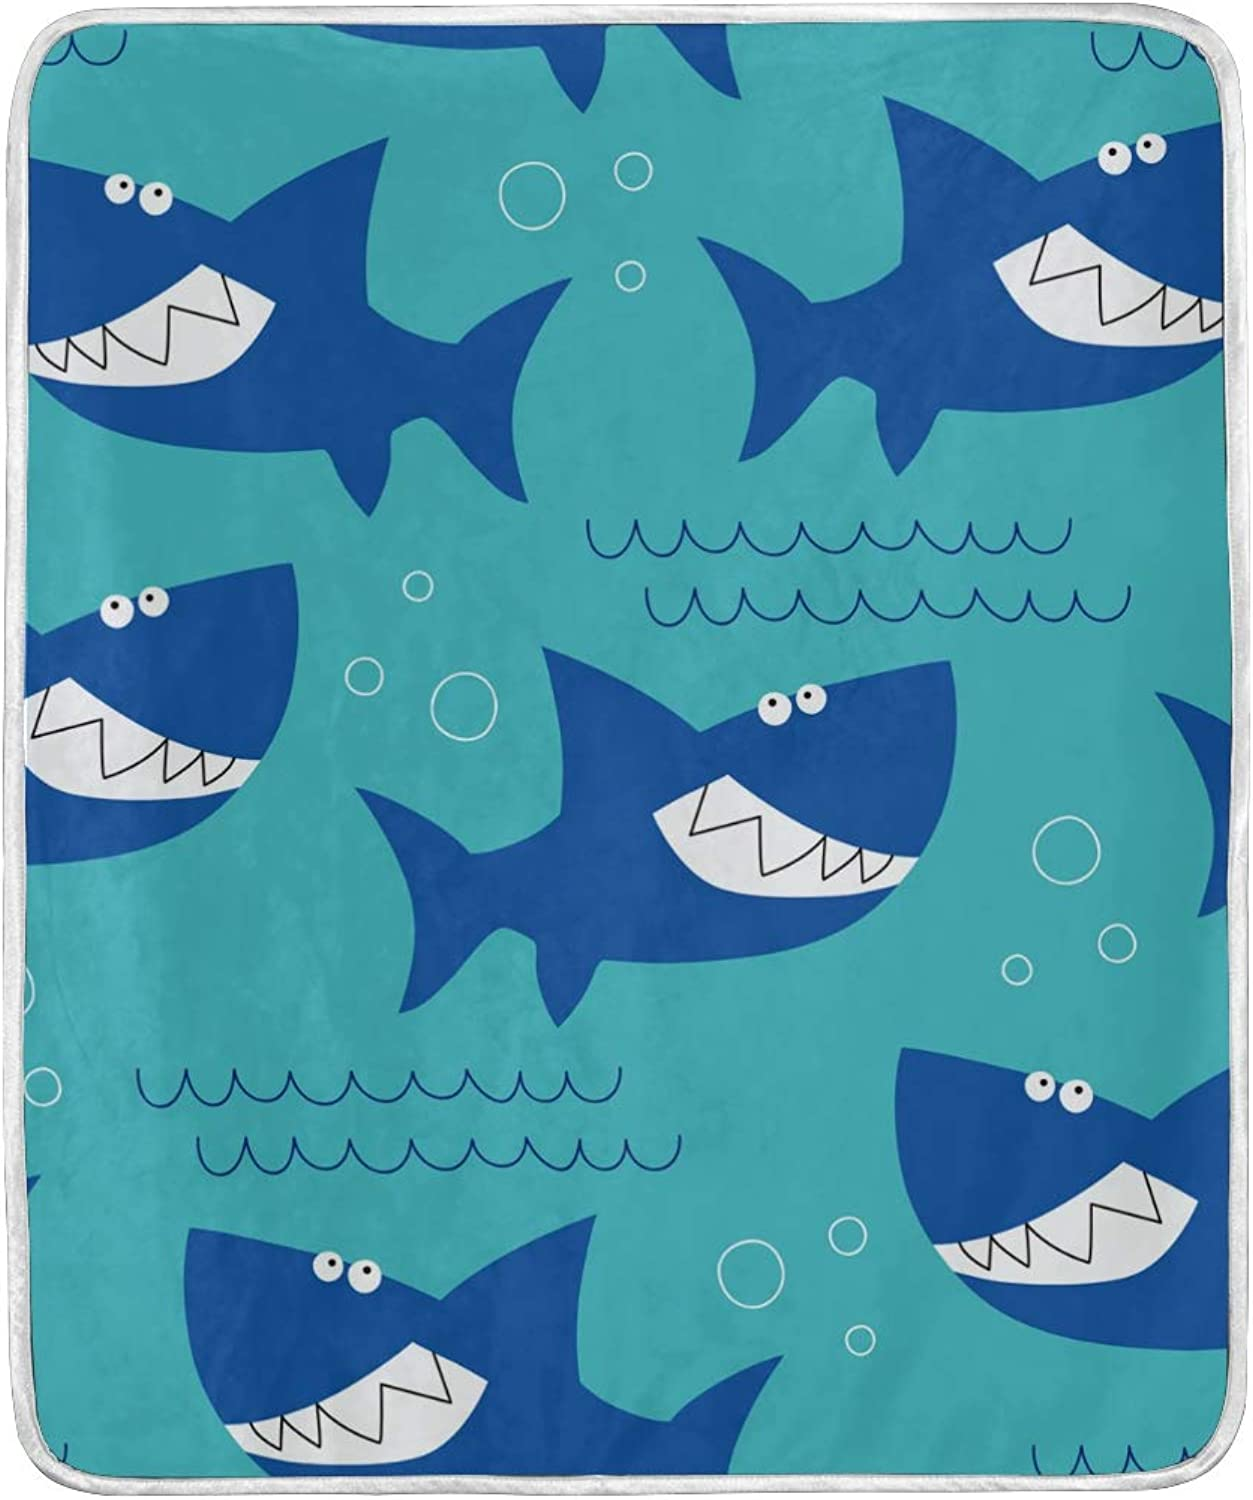 AMONKA Throw Blanket Shark Soft Warm Bed Sofa Couch Blanket Lightweight Polyester Microfiber for Kids Boys Girls Women Travelling Camping 50'' x 60''